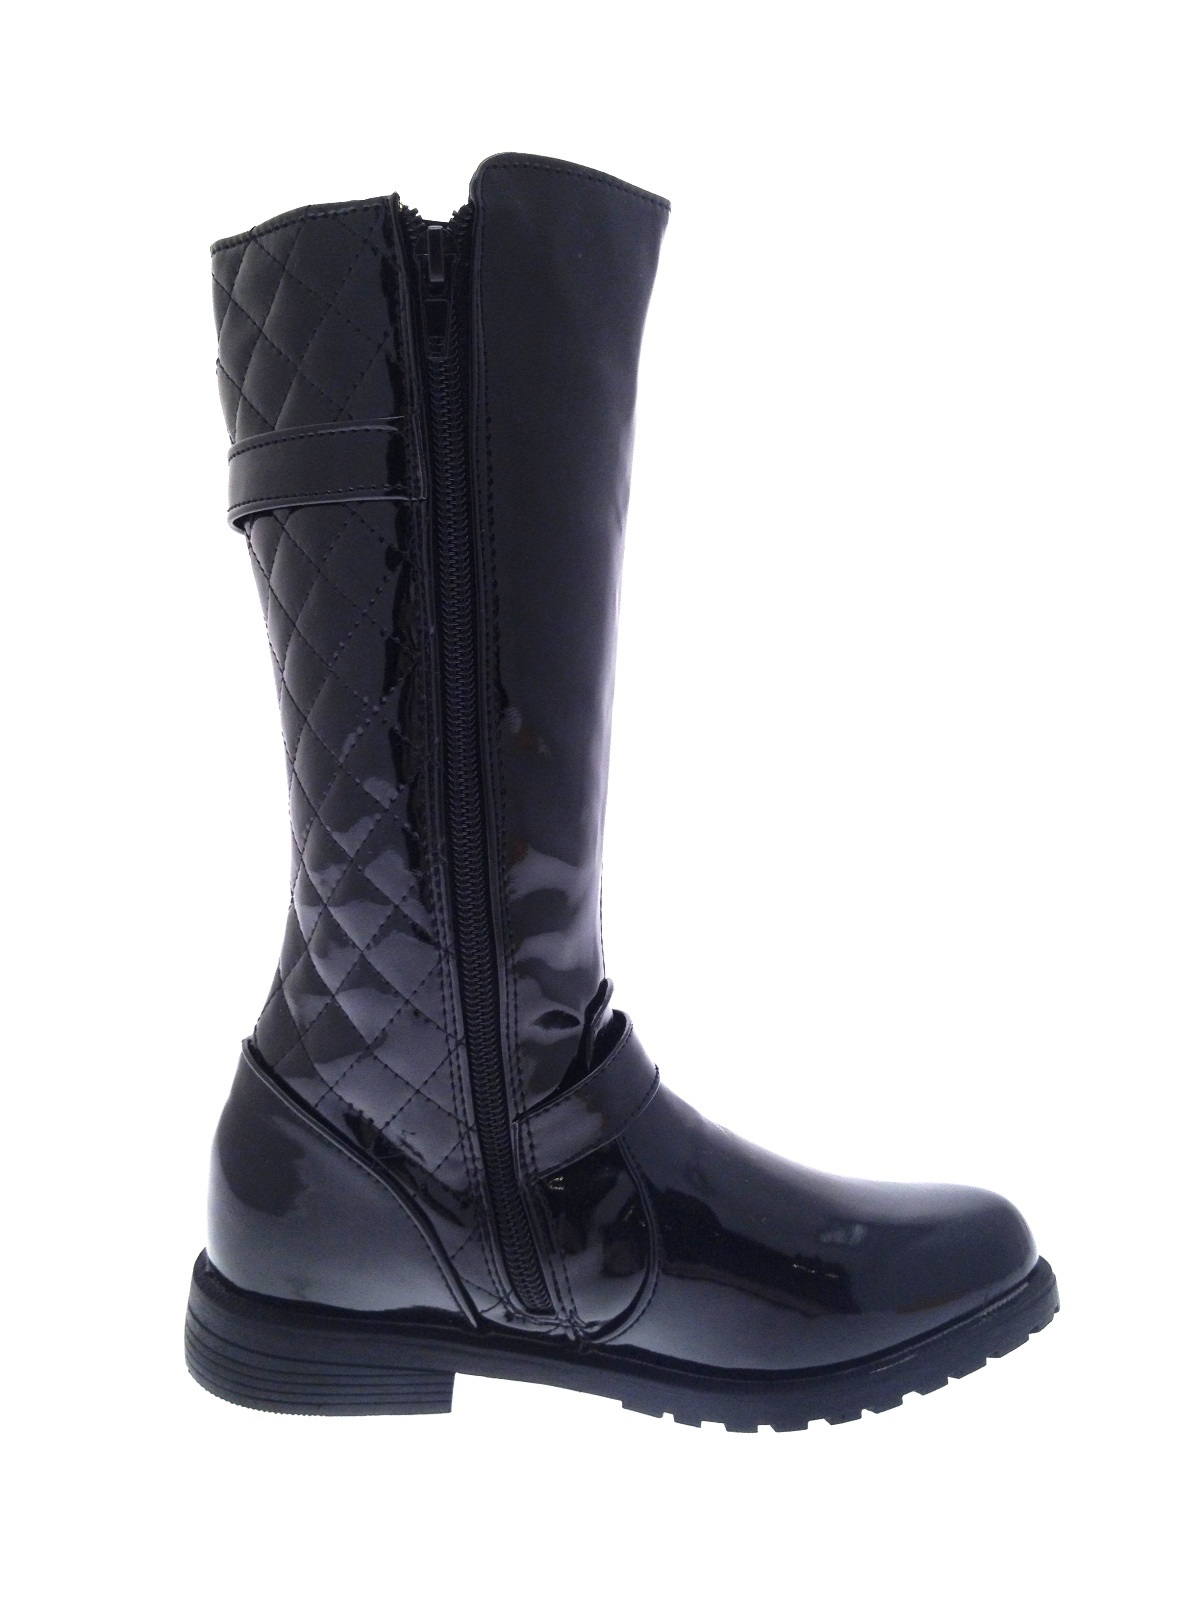 Shop sexy Knee High Boots for Women cheap prices, find all new sexy Knee High Boots online at at AMIClubwear and get free shipping. Buy cheap knee high boots at discount prices, get the newest style cheap knee high boots for women for under retail prices.